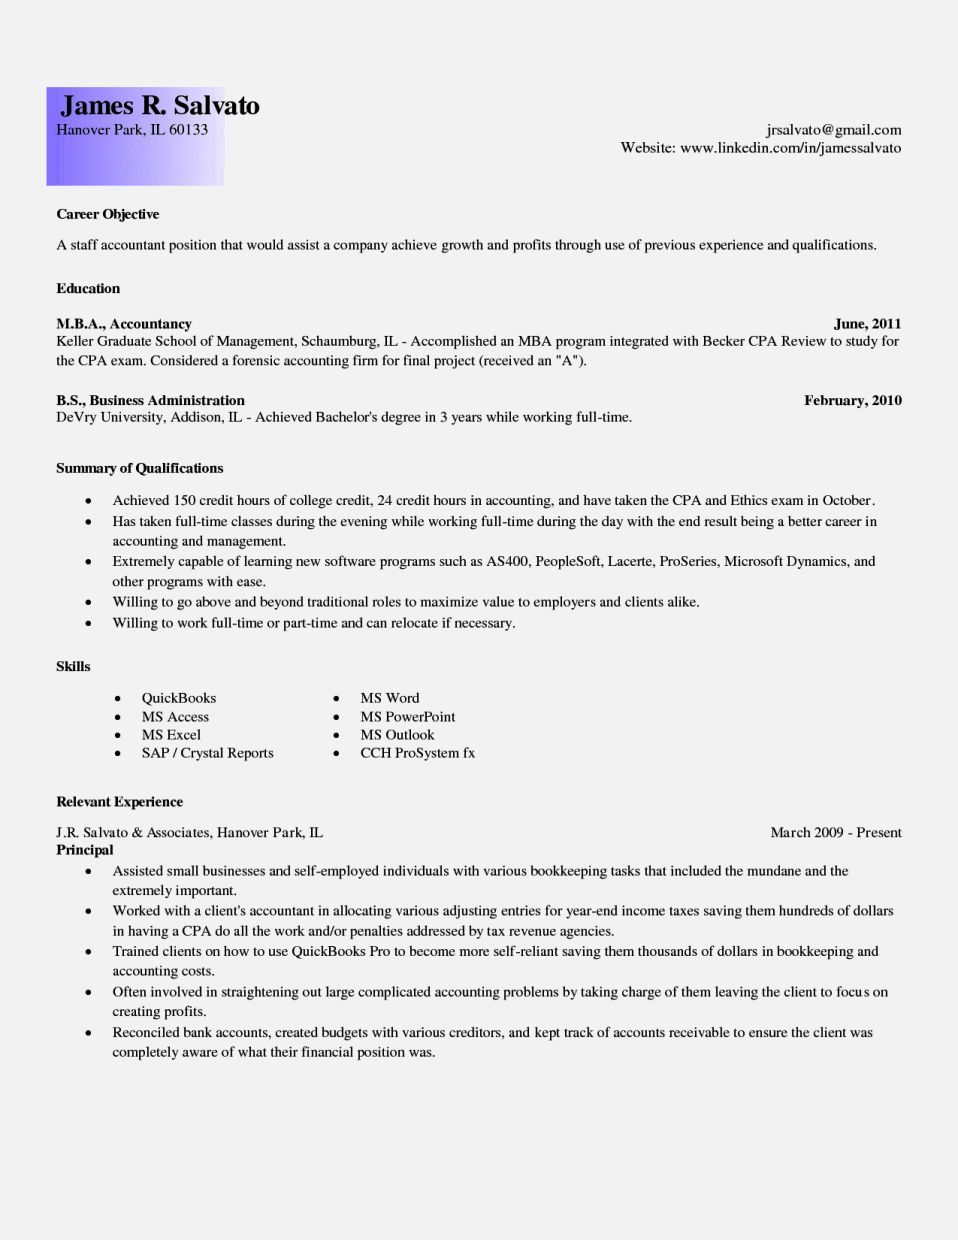 Entry Level Accounting Resumes Gorgeous Httpinformationgateresumeletterentrylevelaccountant .